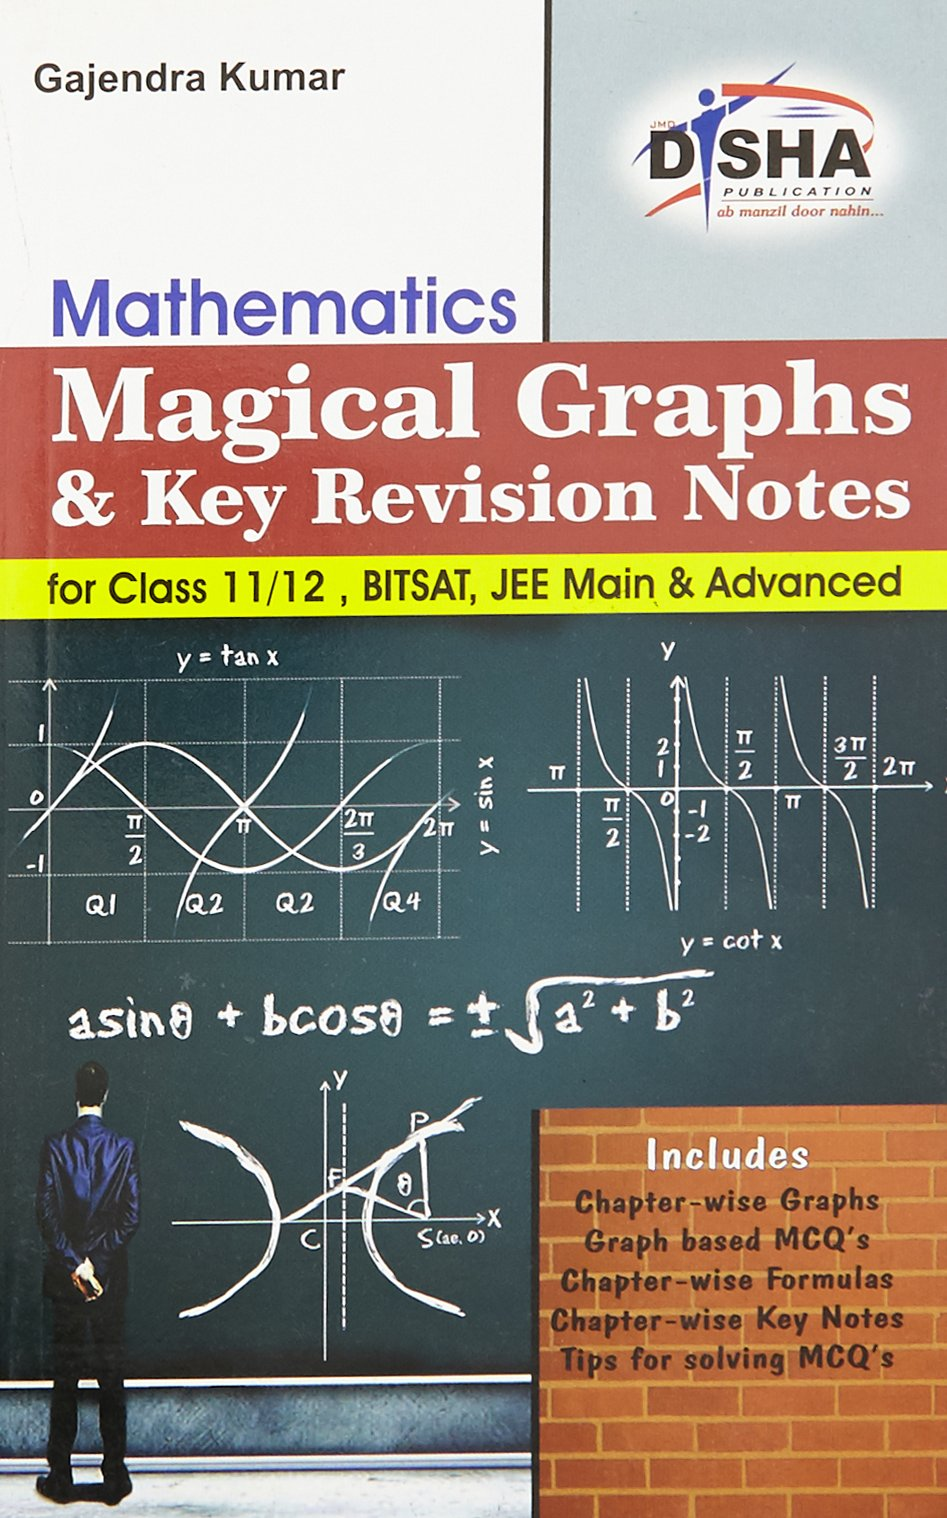 Magical Graphs and Key Revision Notes for Mathematics Class 11/12